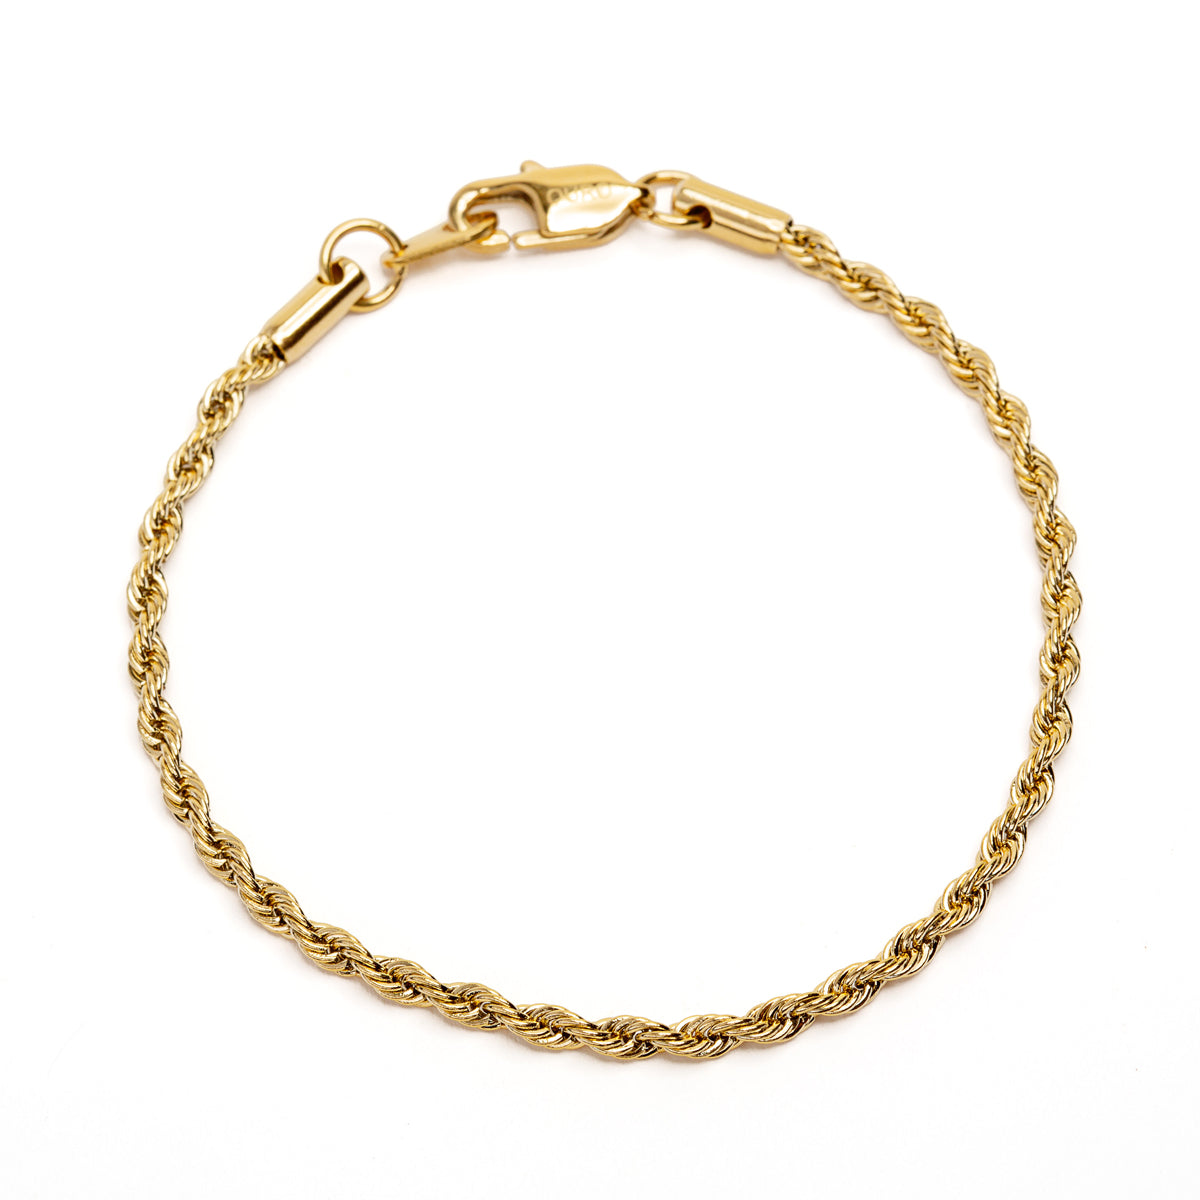 Tucana Rope Chain - Ouro Goods